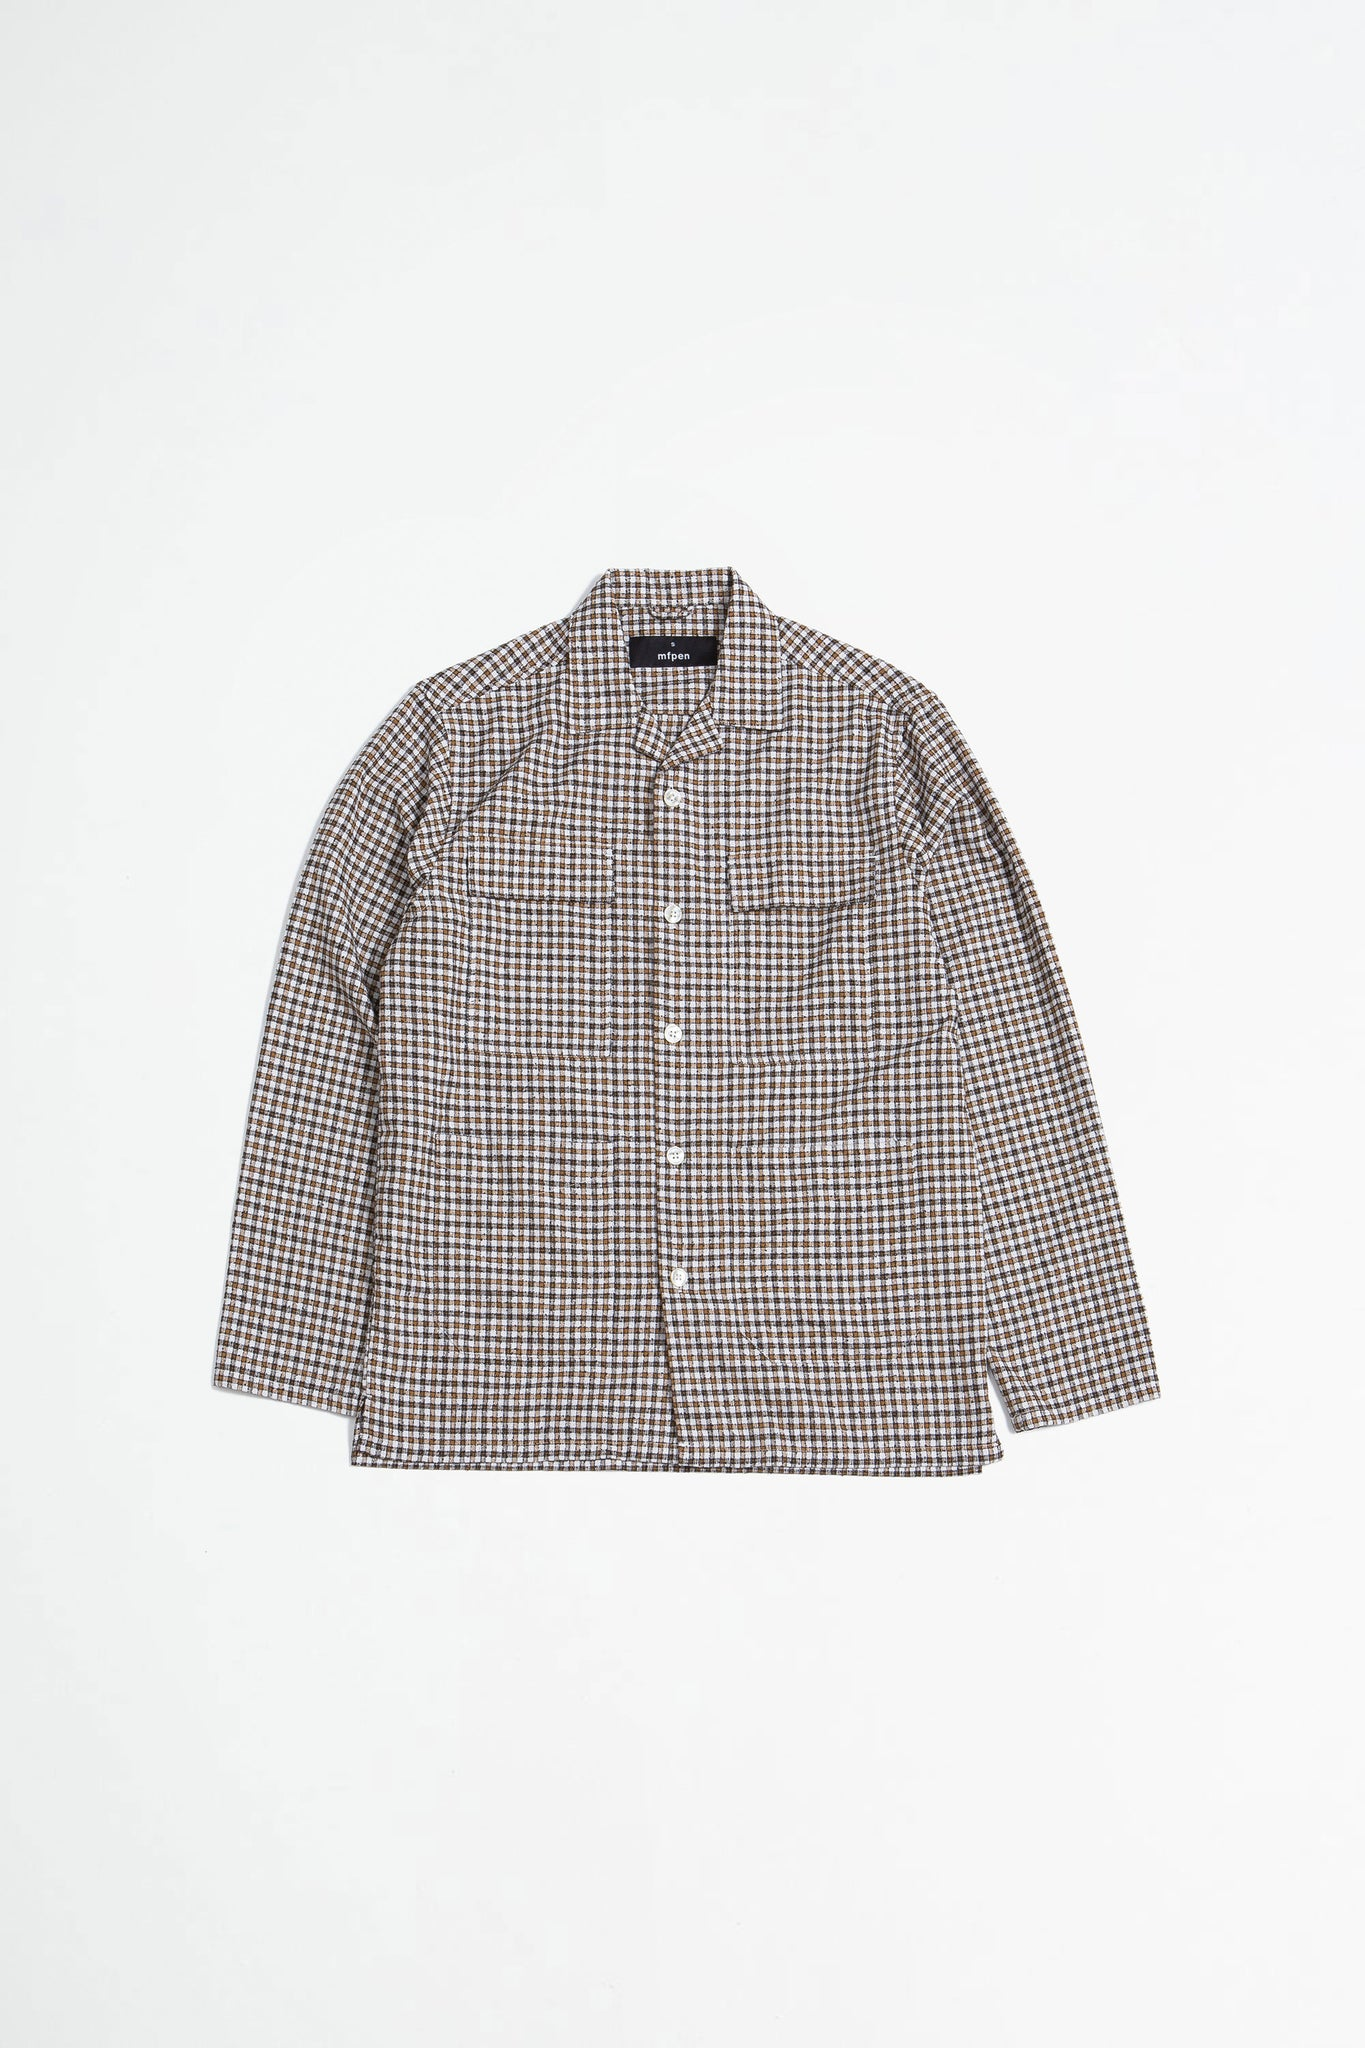 Work shirt brown